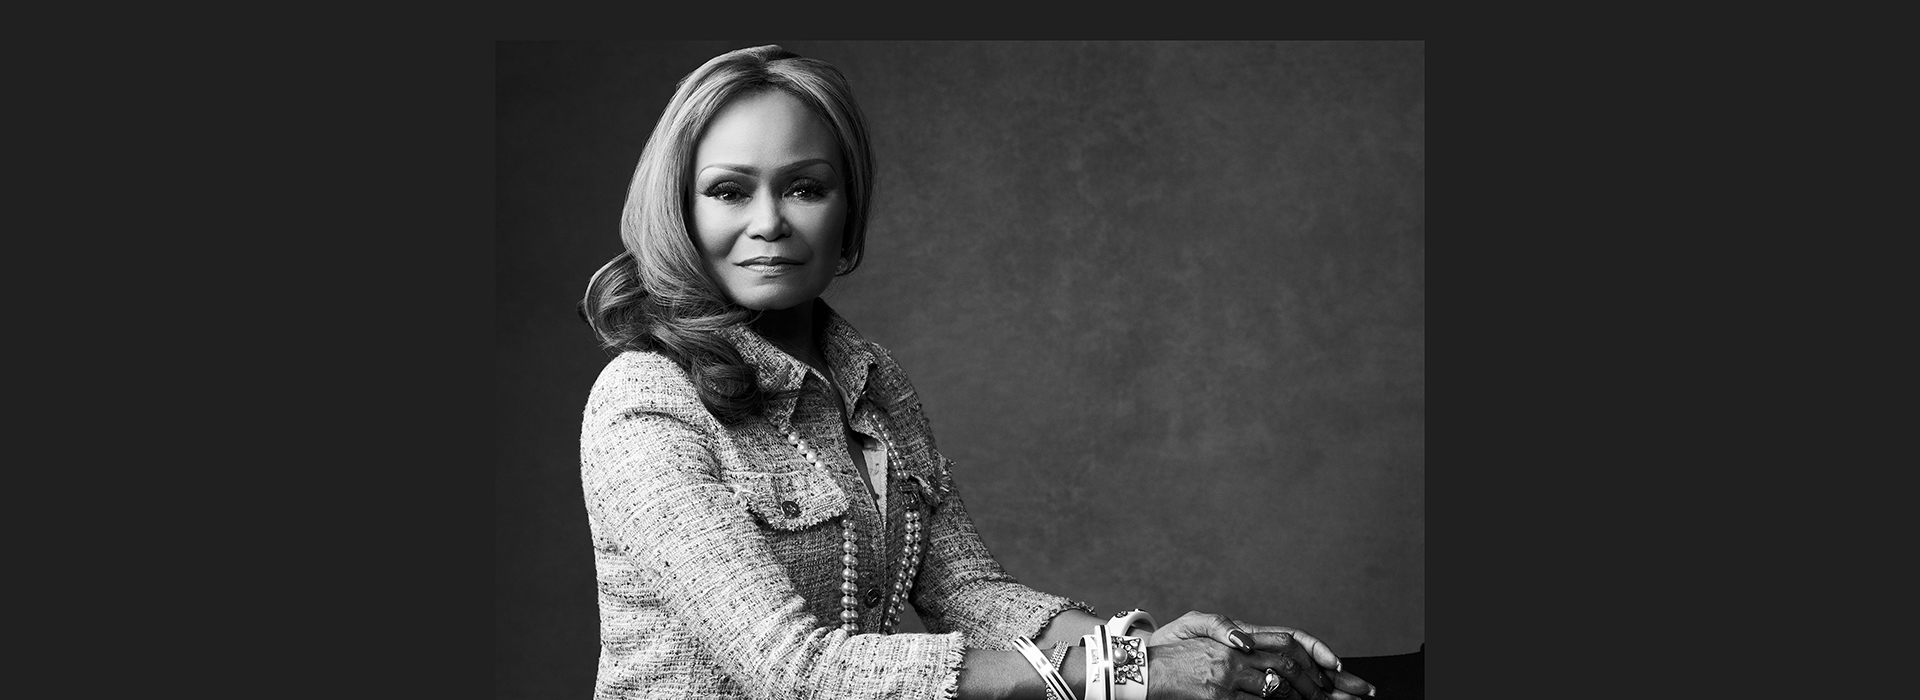 Global leader in the human resources industry, Janice Bryant Howroyd, to speak at CSUSB